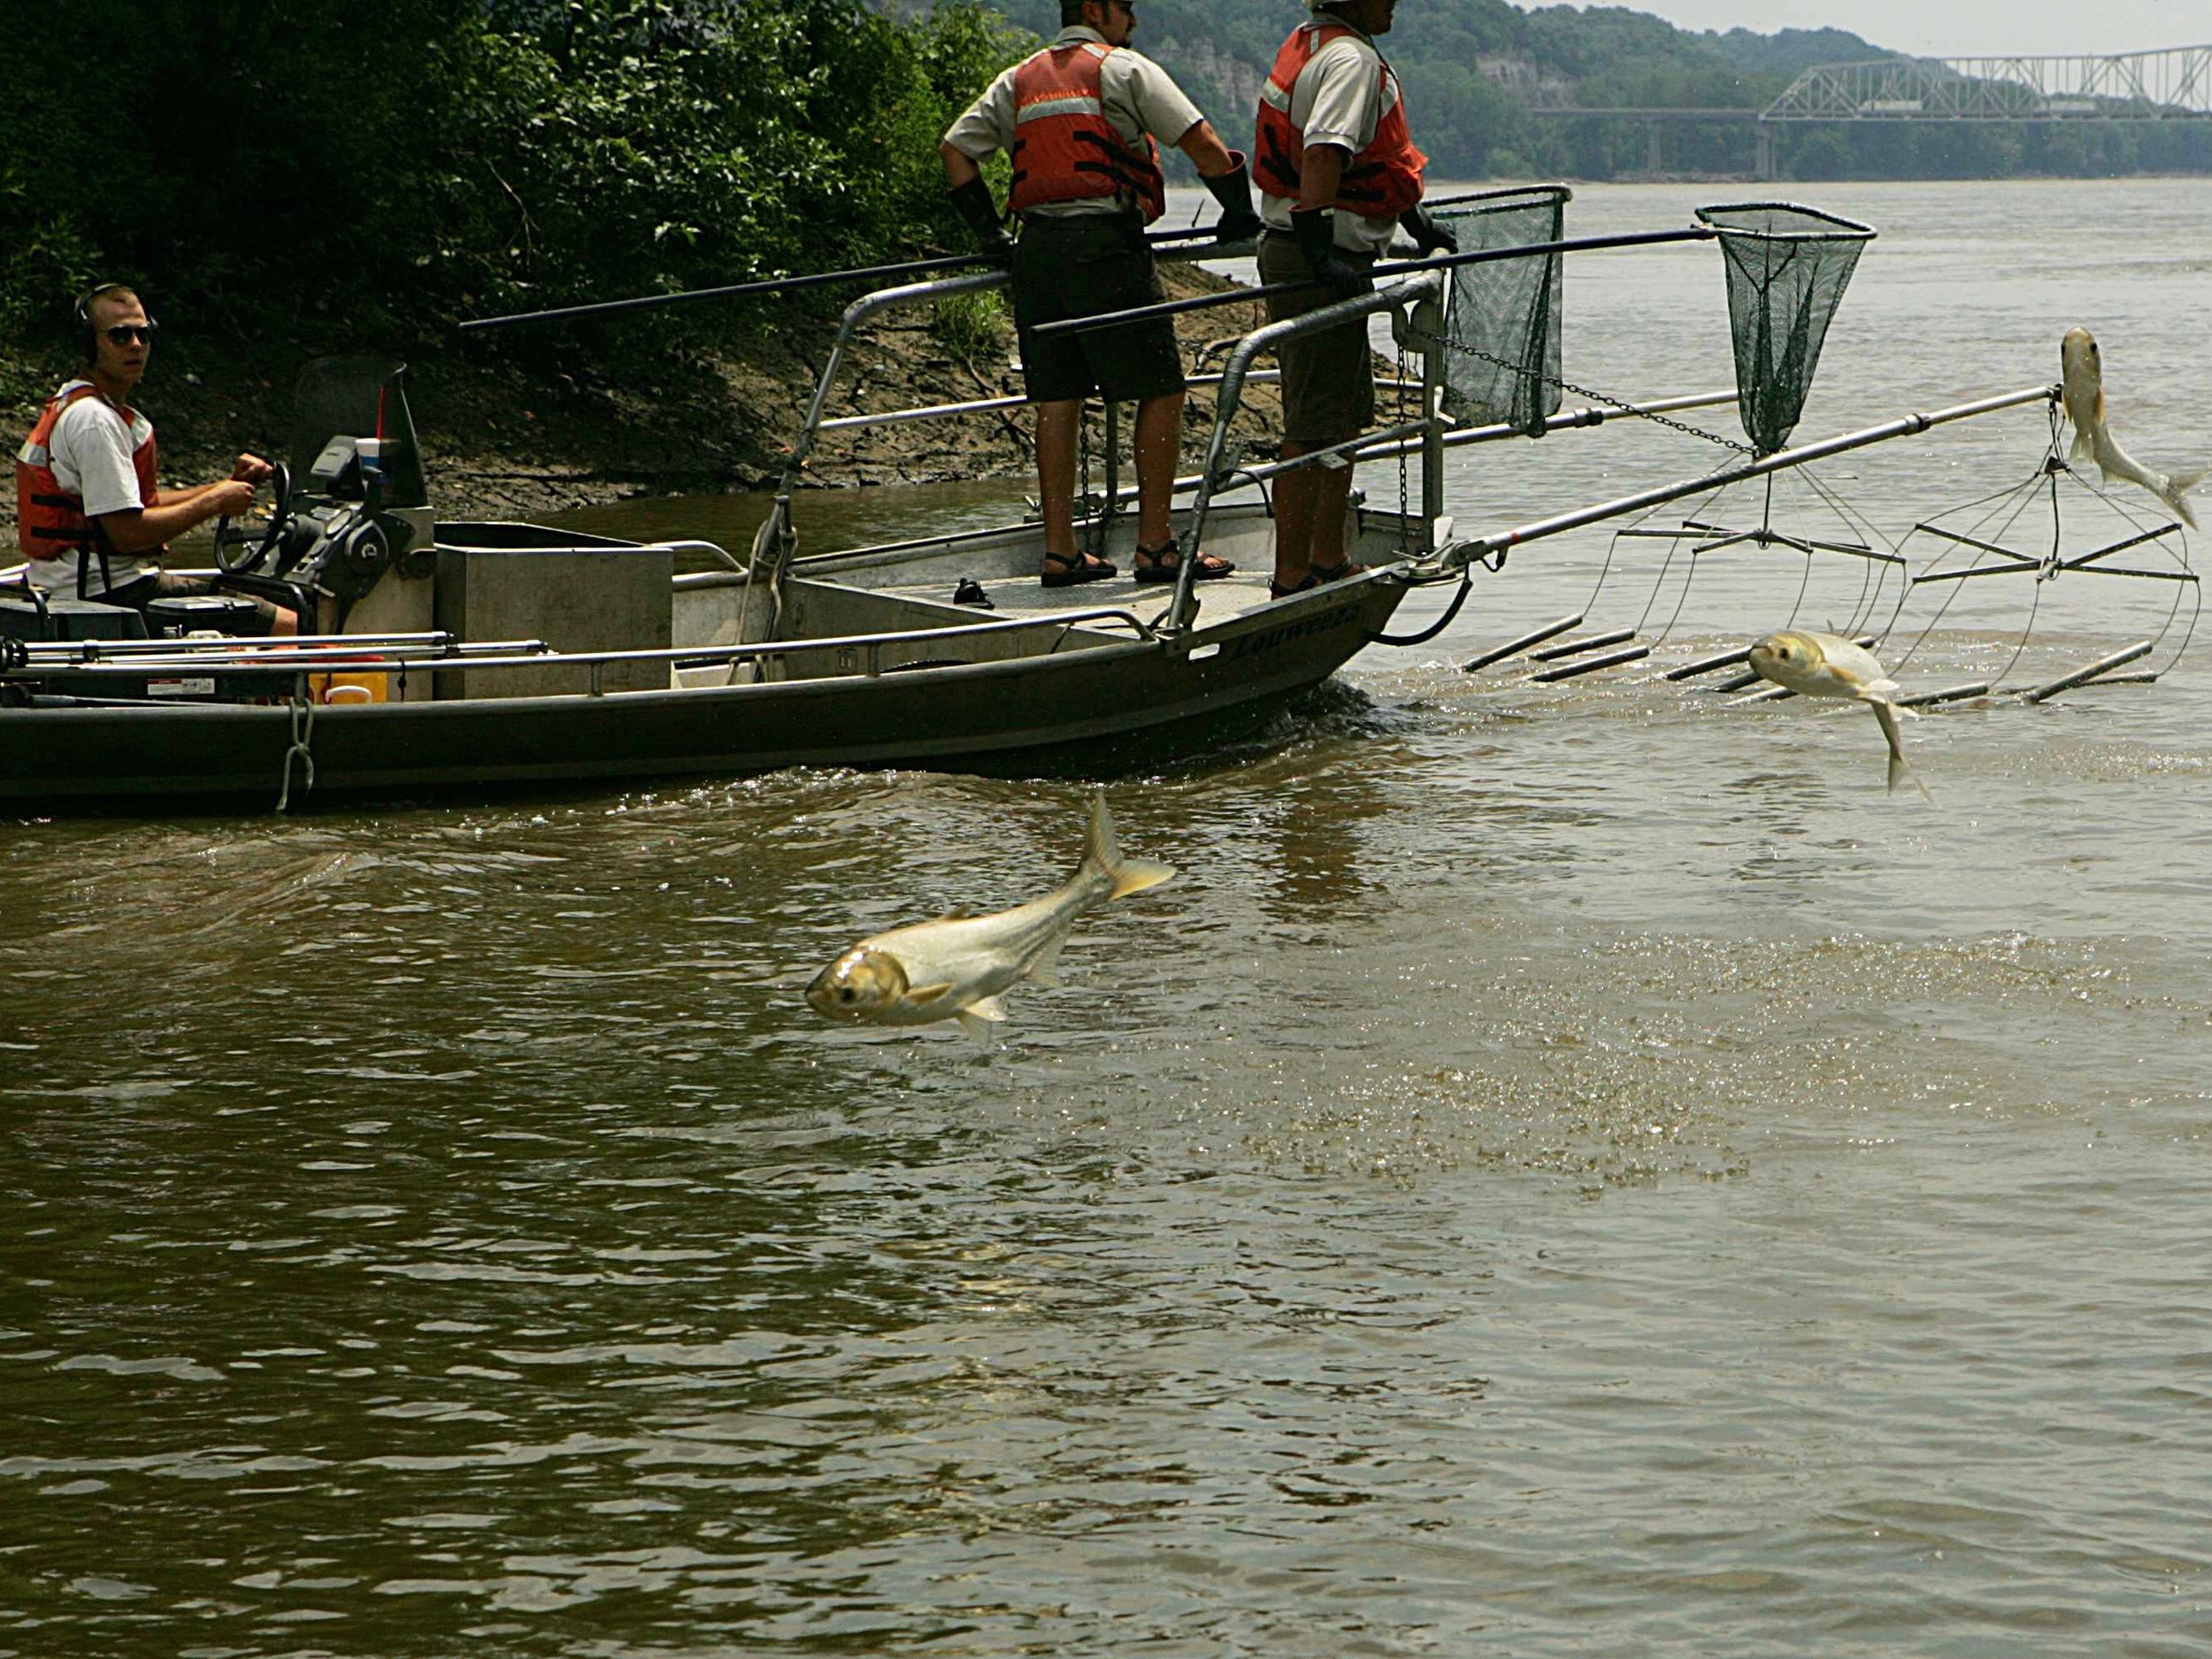 Silver carp leap to elude capture by researchers. (U.S. Fish and Wildlife Service)